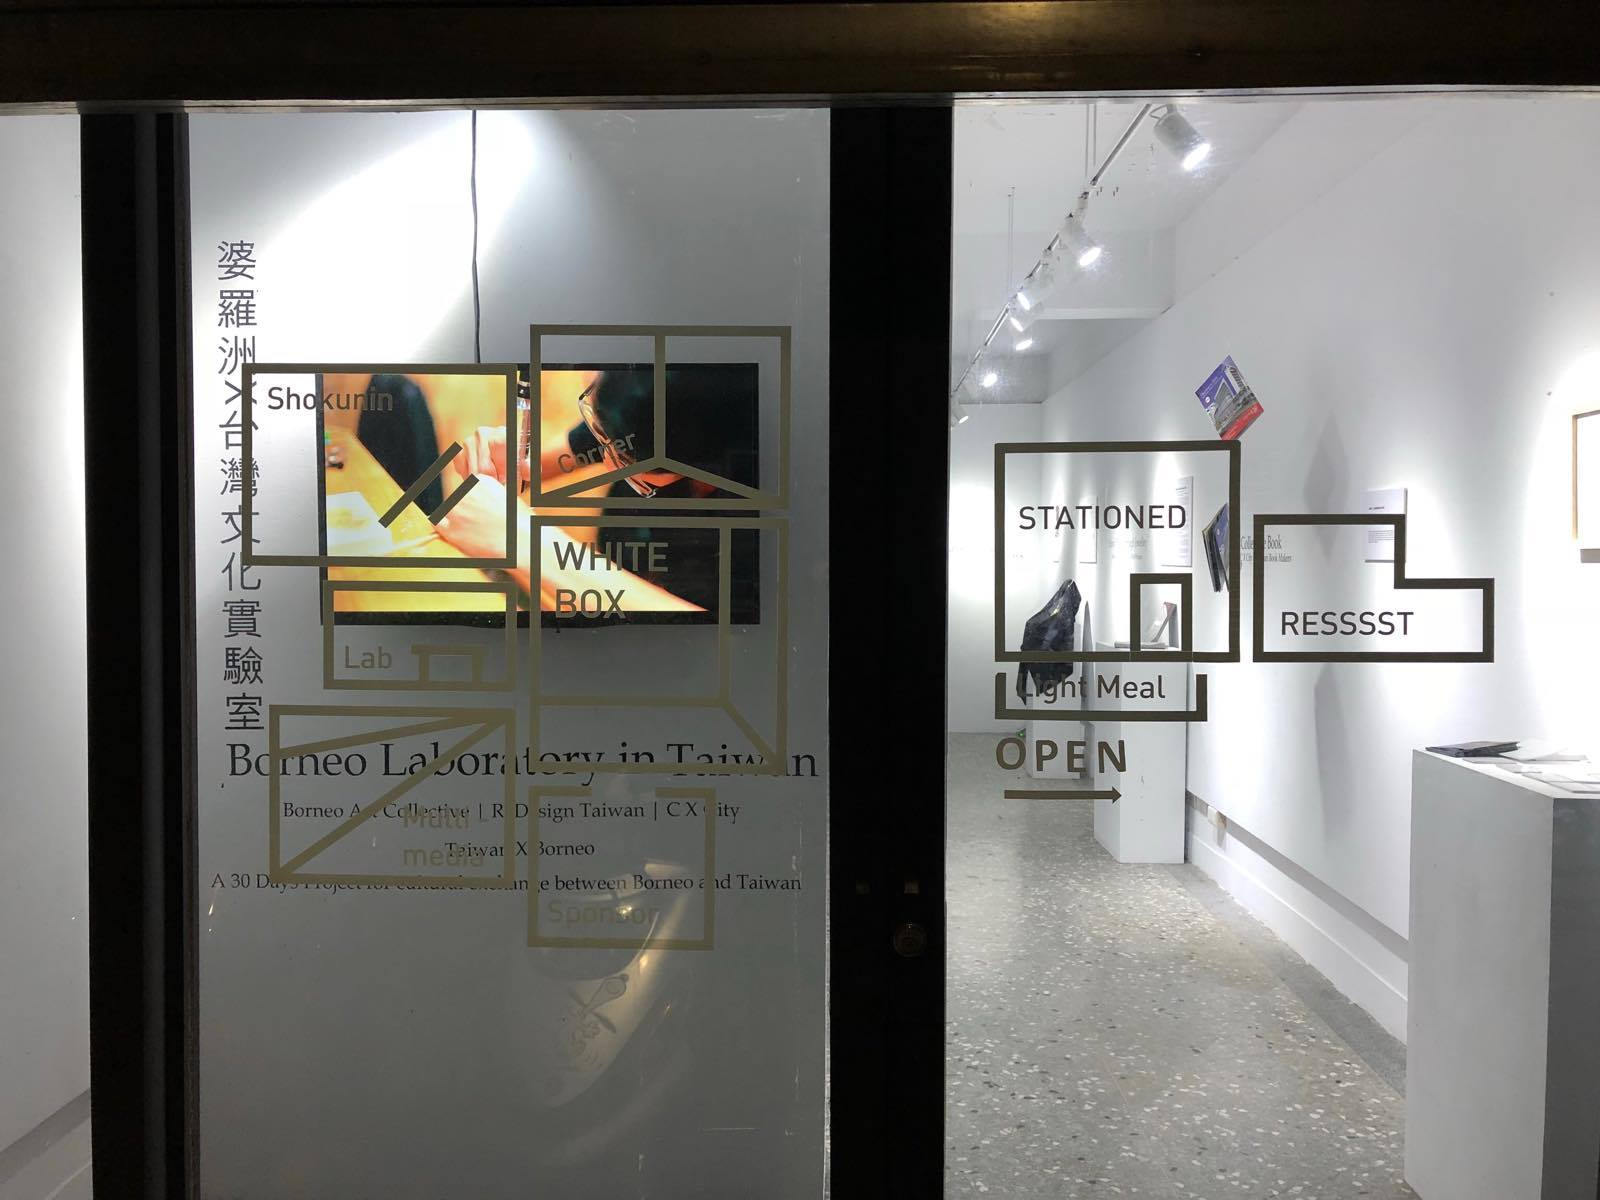 The exhibition at Waley Art